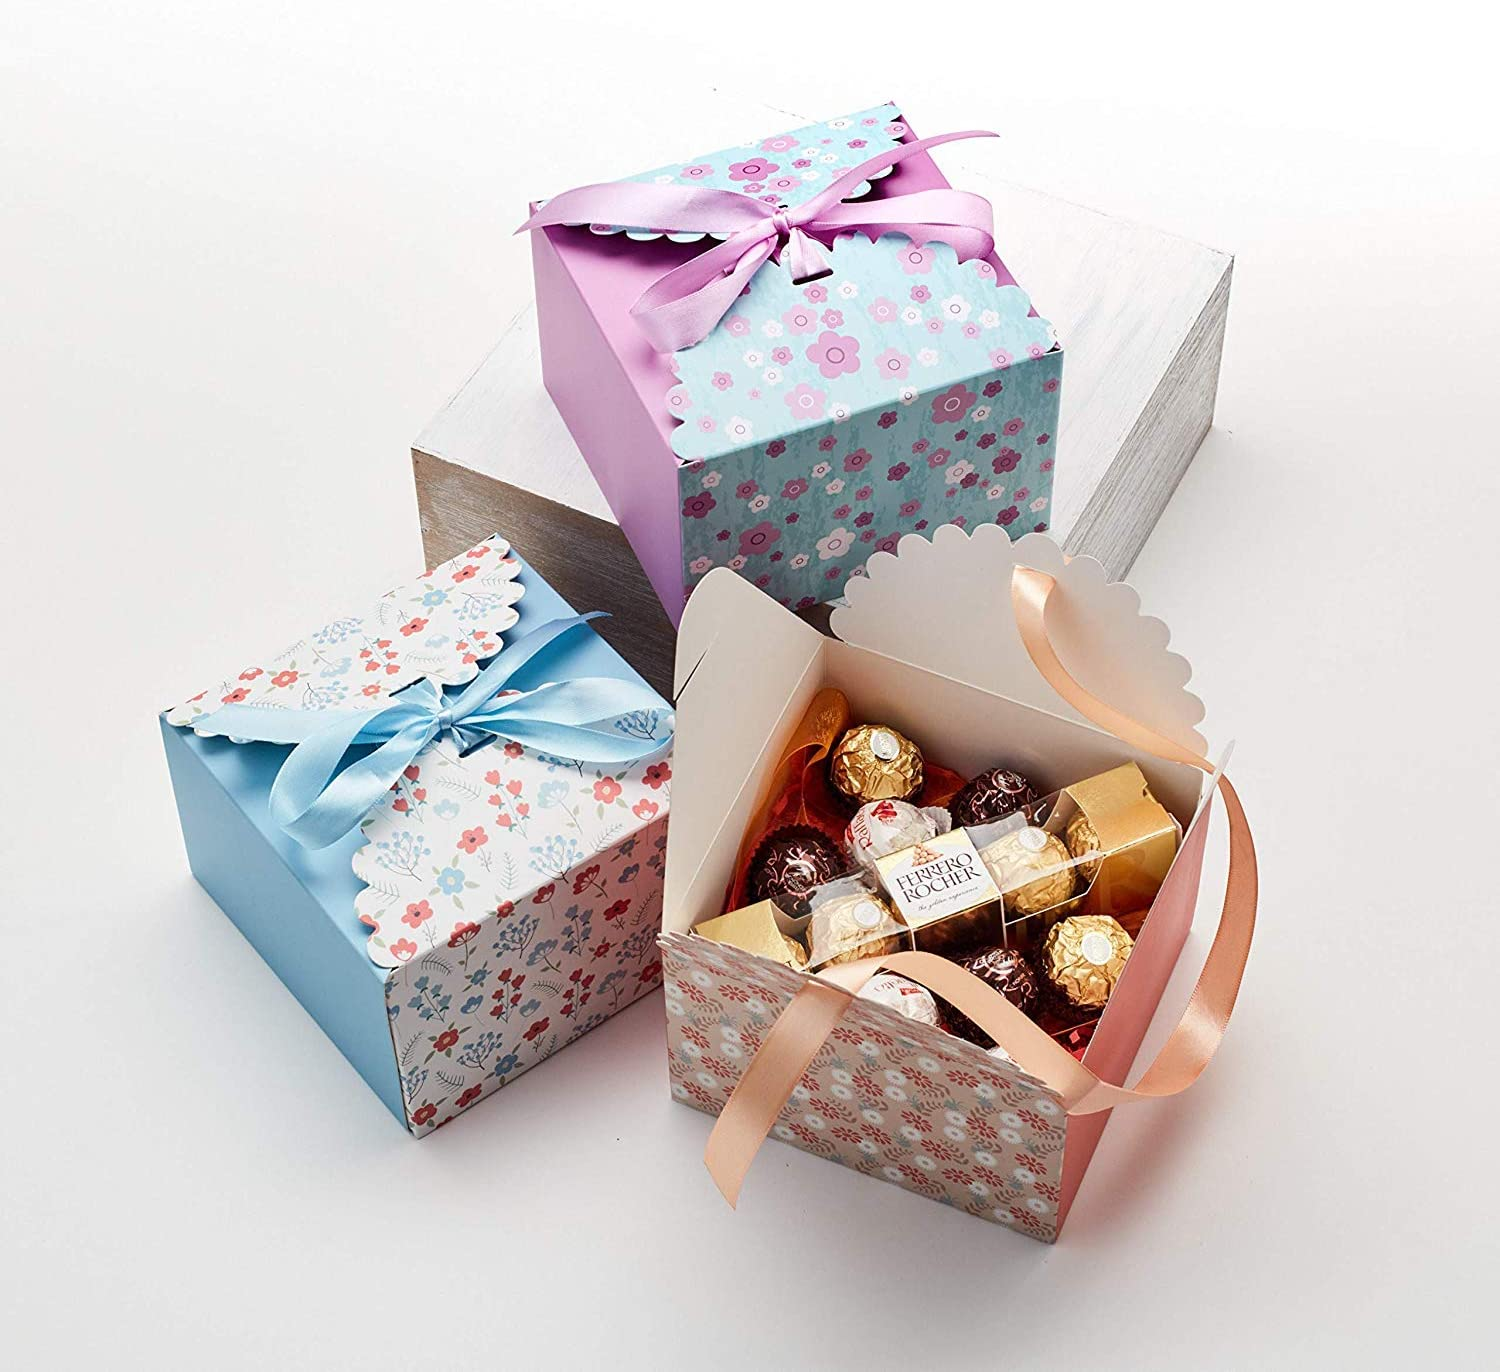 Party Christmas Weddings Bridesmaids Hayley Cherie Gift Treat Boxes with Ribbons Large Candy 20 Pack - Thick 400gsm Card for Cakes Birthdays Cookies 7.3 x 7.3 x 4.6 Inches Goodies